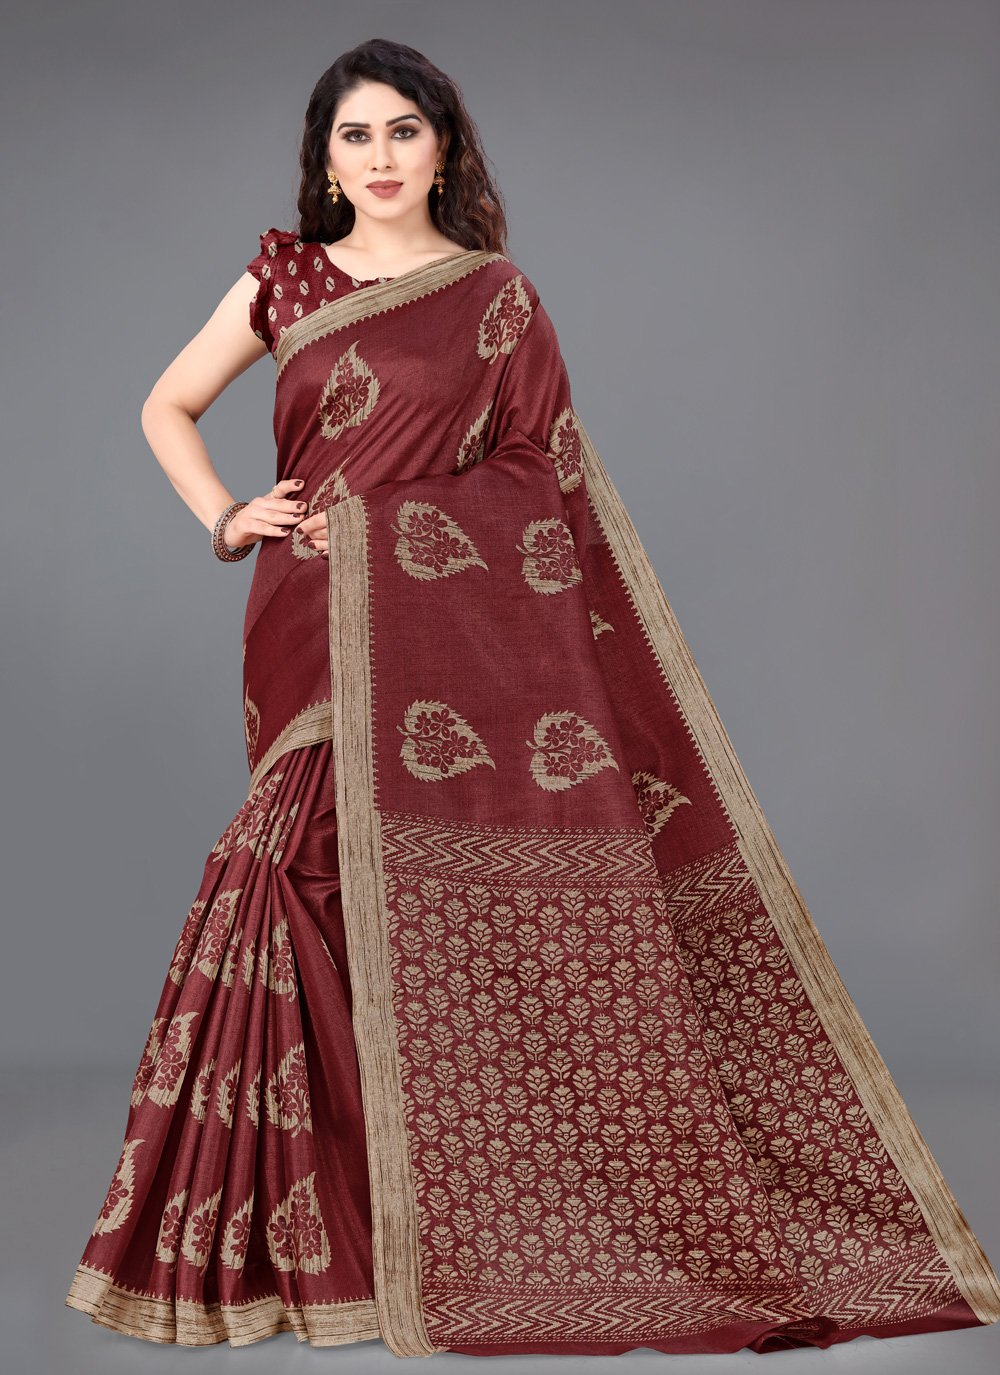 Beige and Maroon Traditional Saree